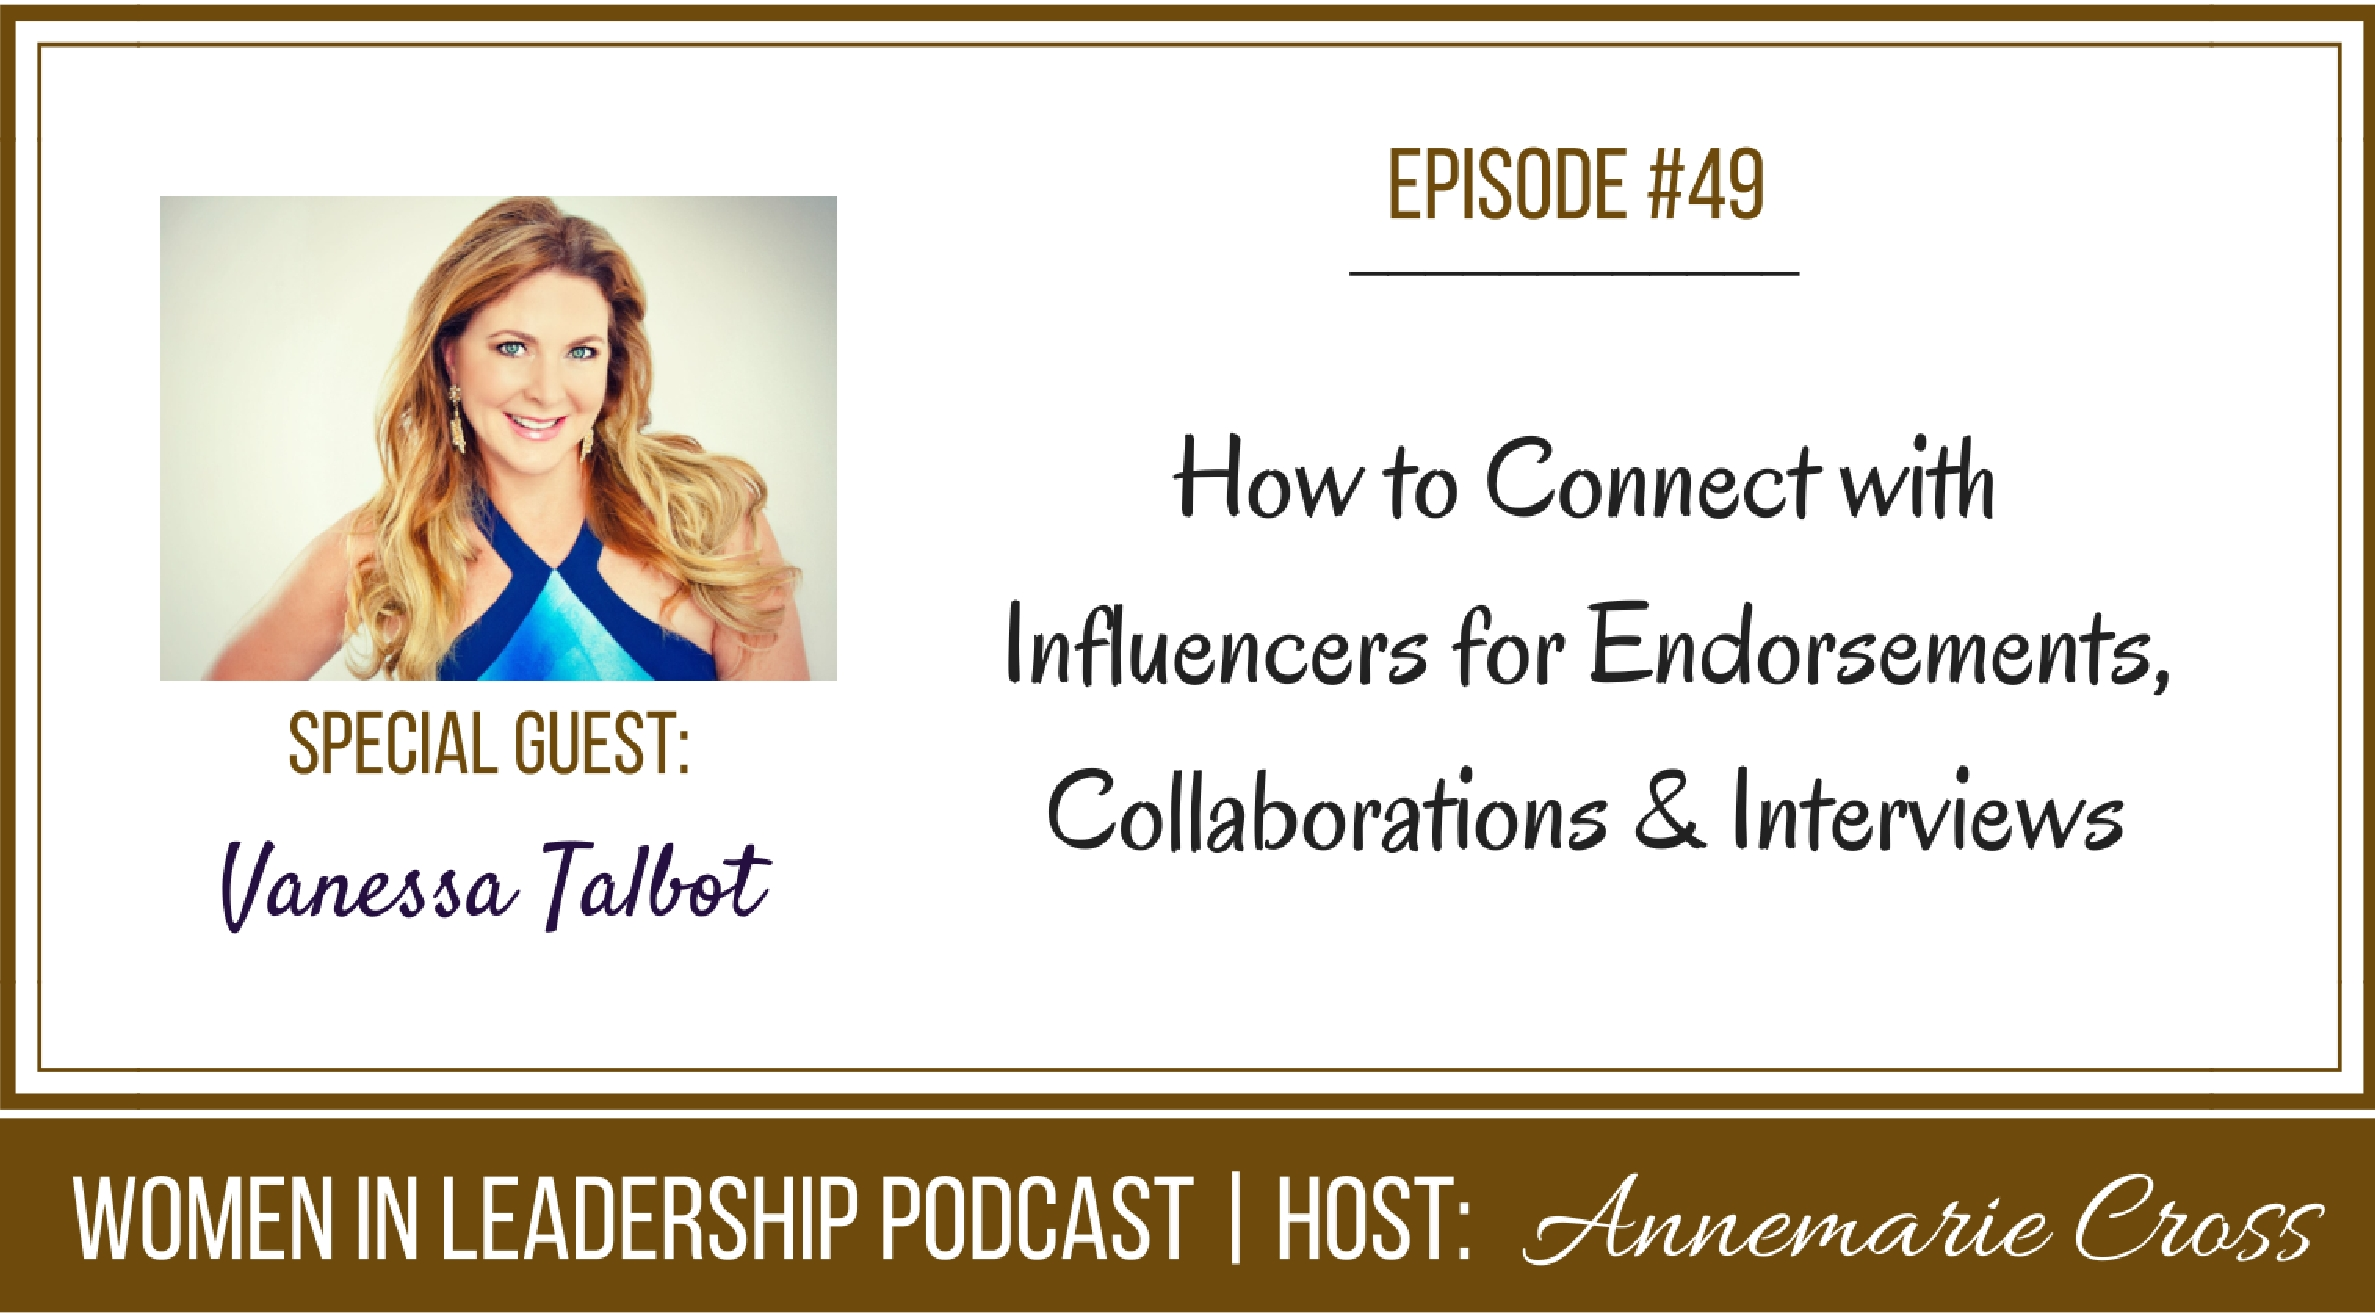 [Ep#49] How to Connect with Influencers for Endorsements, Collaborations & Interviews [podcast]